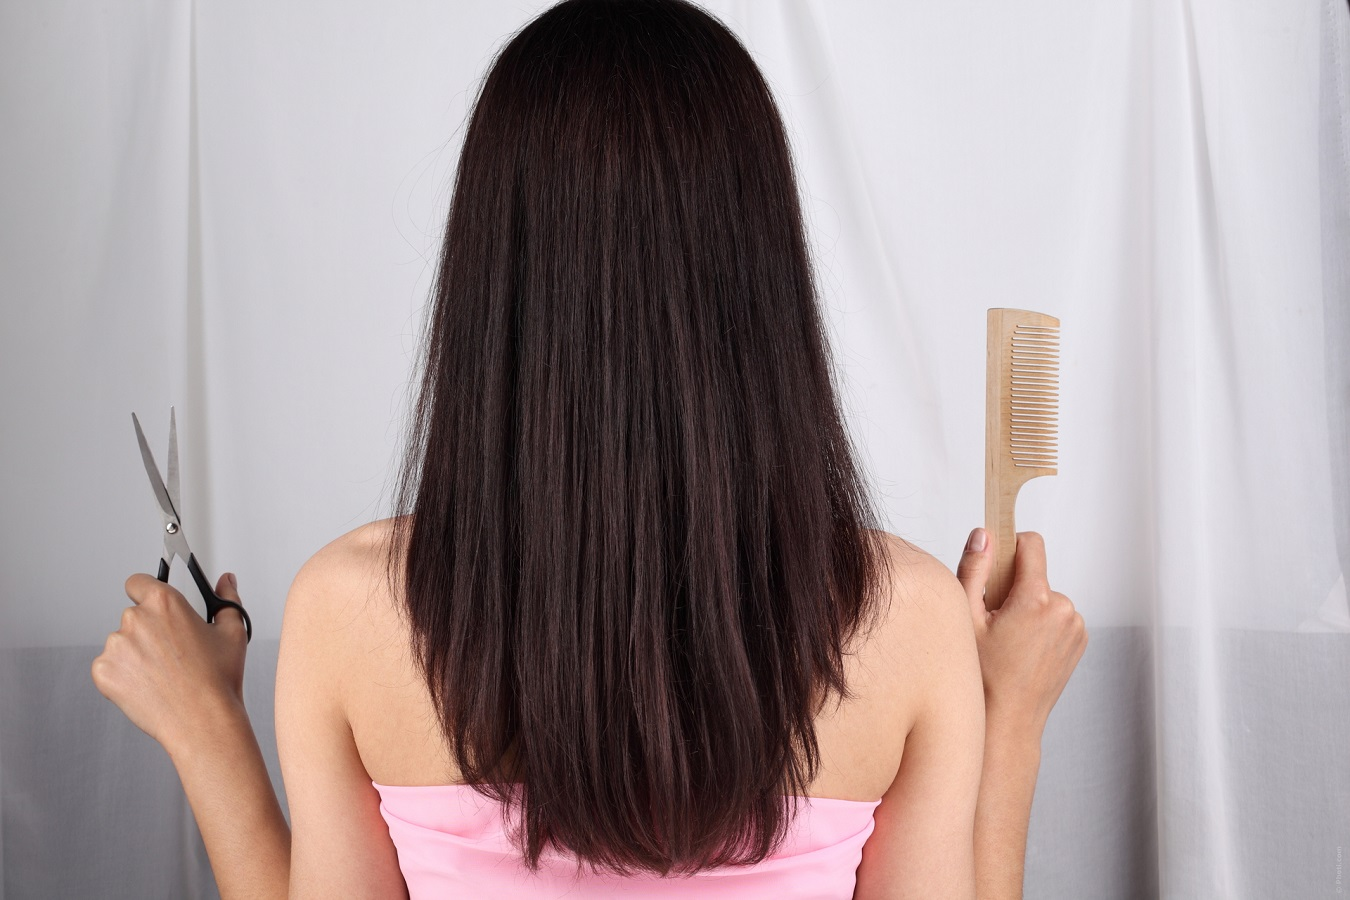 5 mistakes women often make when choosing a haircut